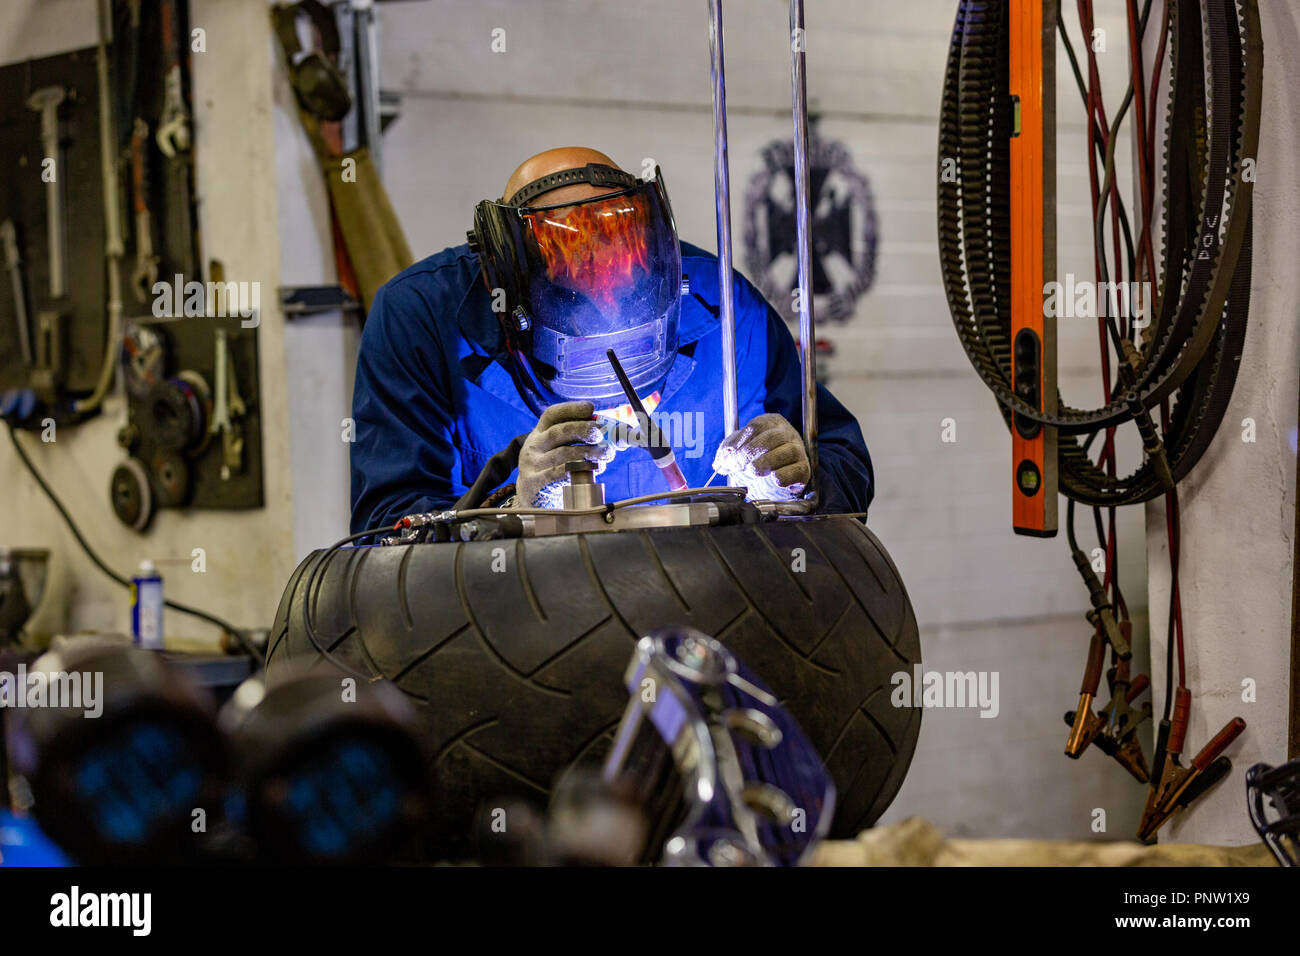 Professional car mechanic working in auto repair service on argon gas cutting machine - Stock Image